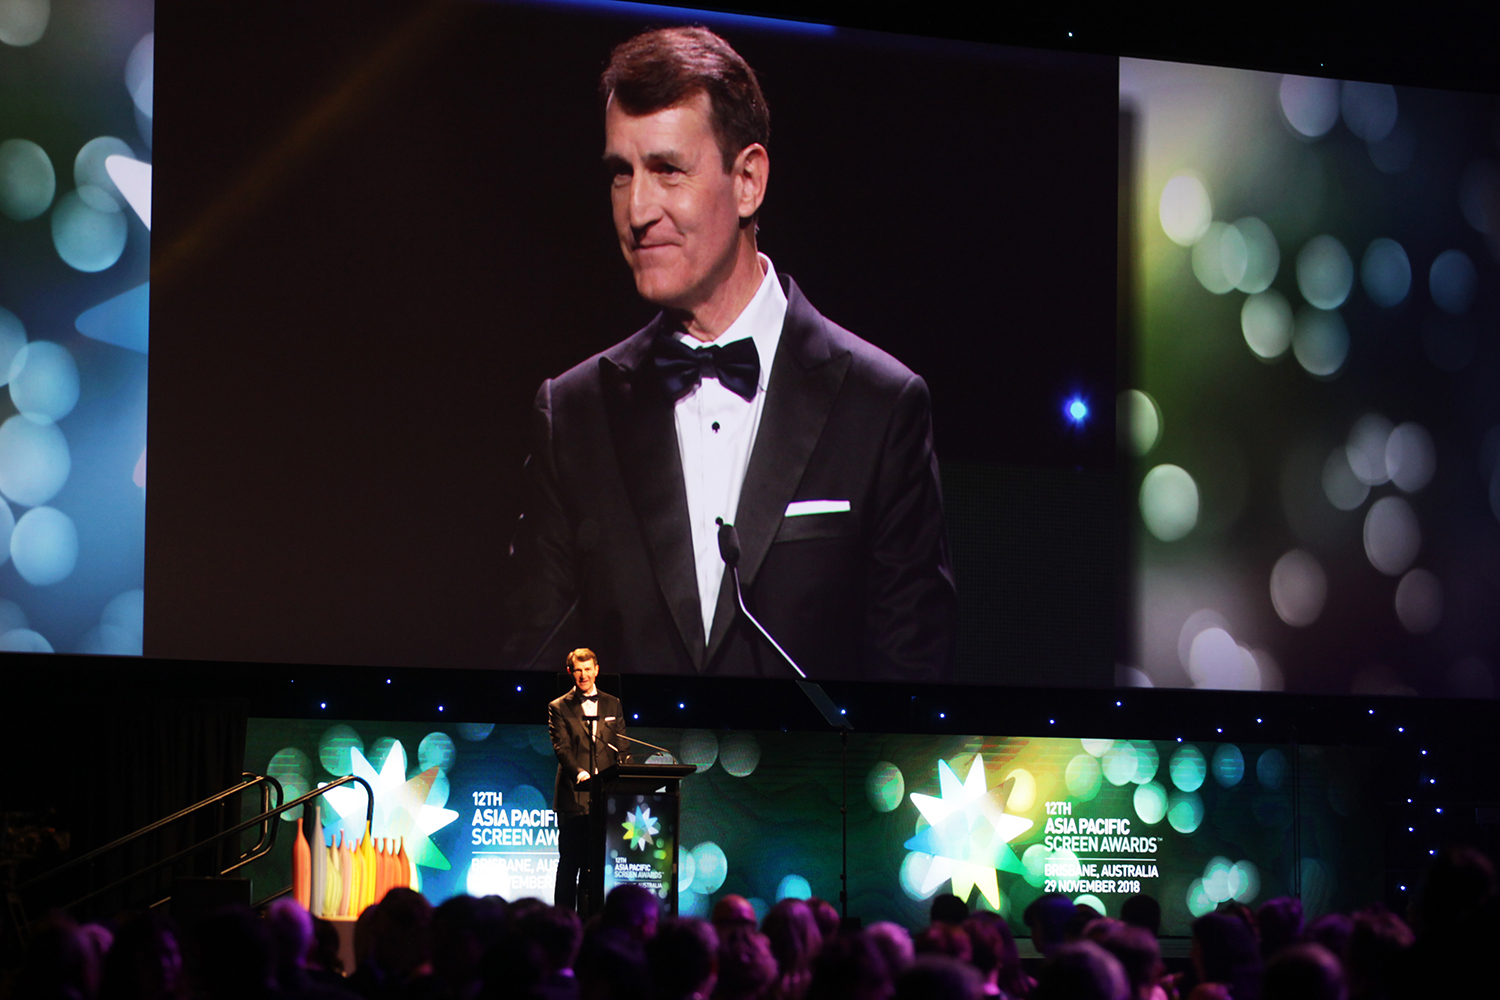 Brisbane's Lord Mayor Graham Quirk at the Asia Pacific Screen Awards